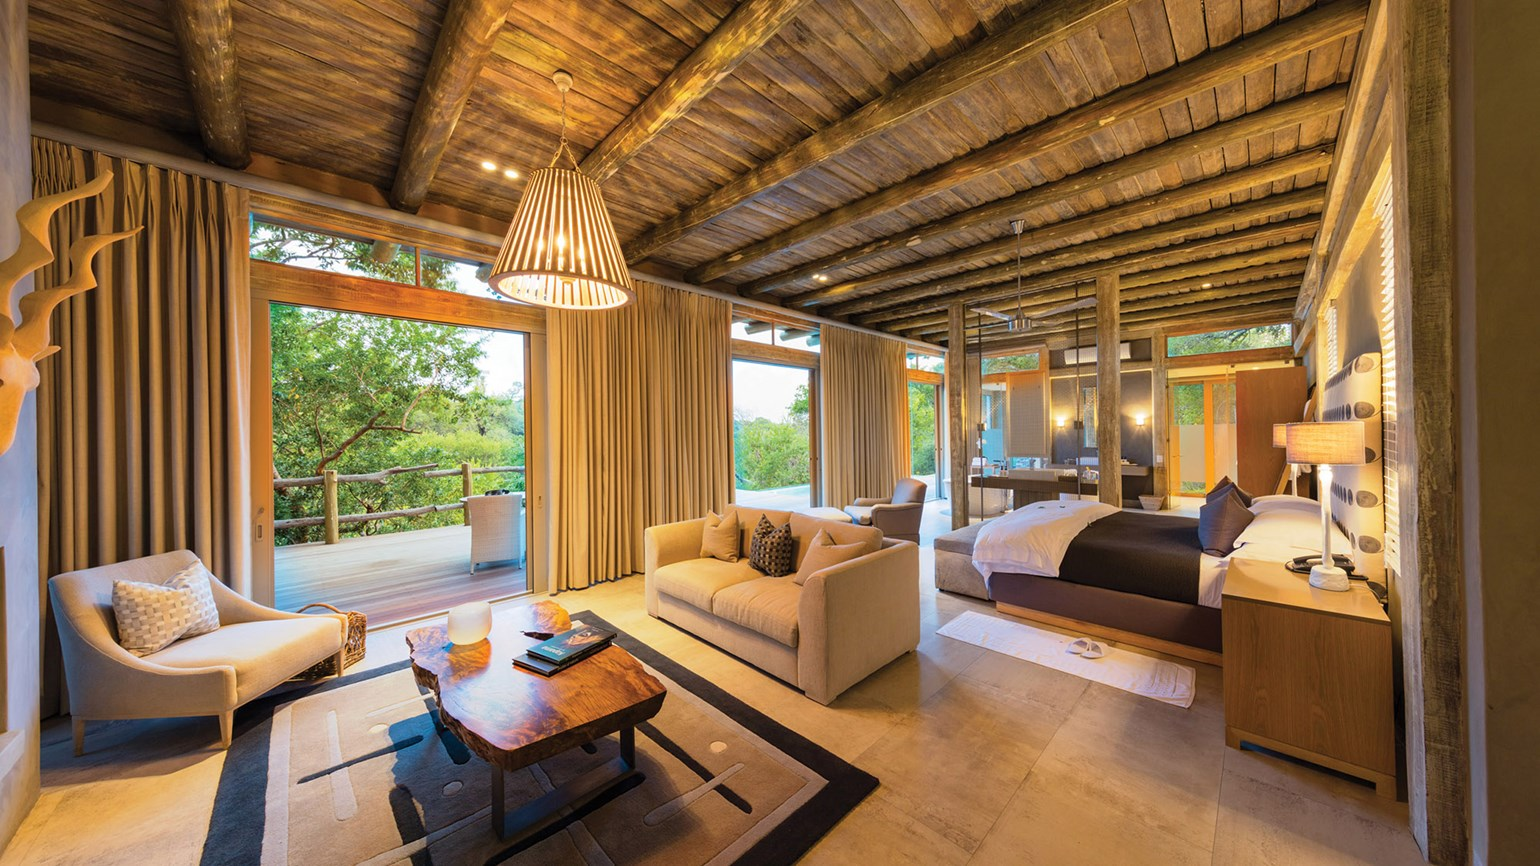 Big Five, posh vibes at Kapama Karula lodge